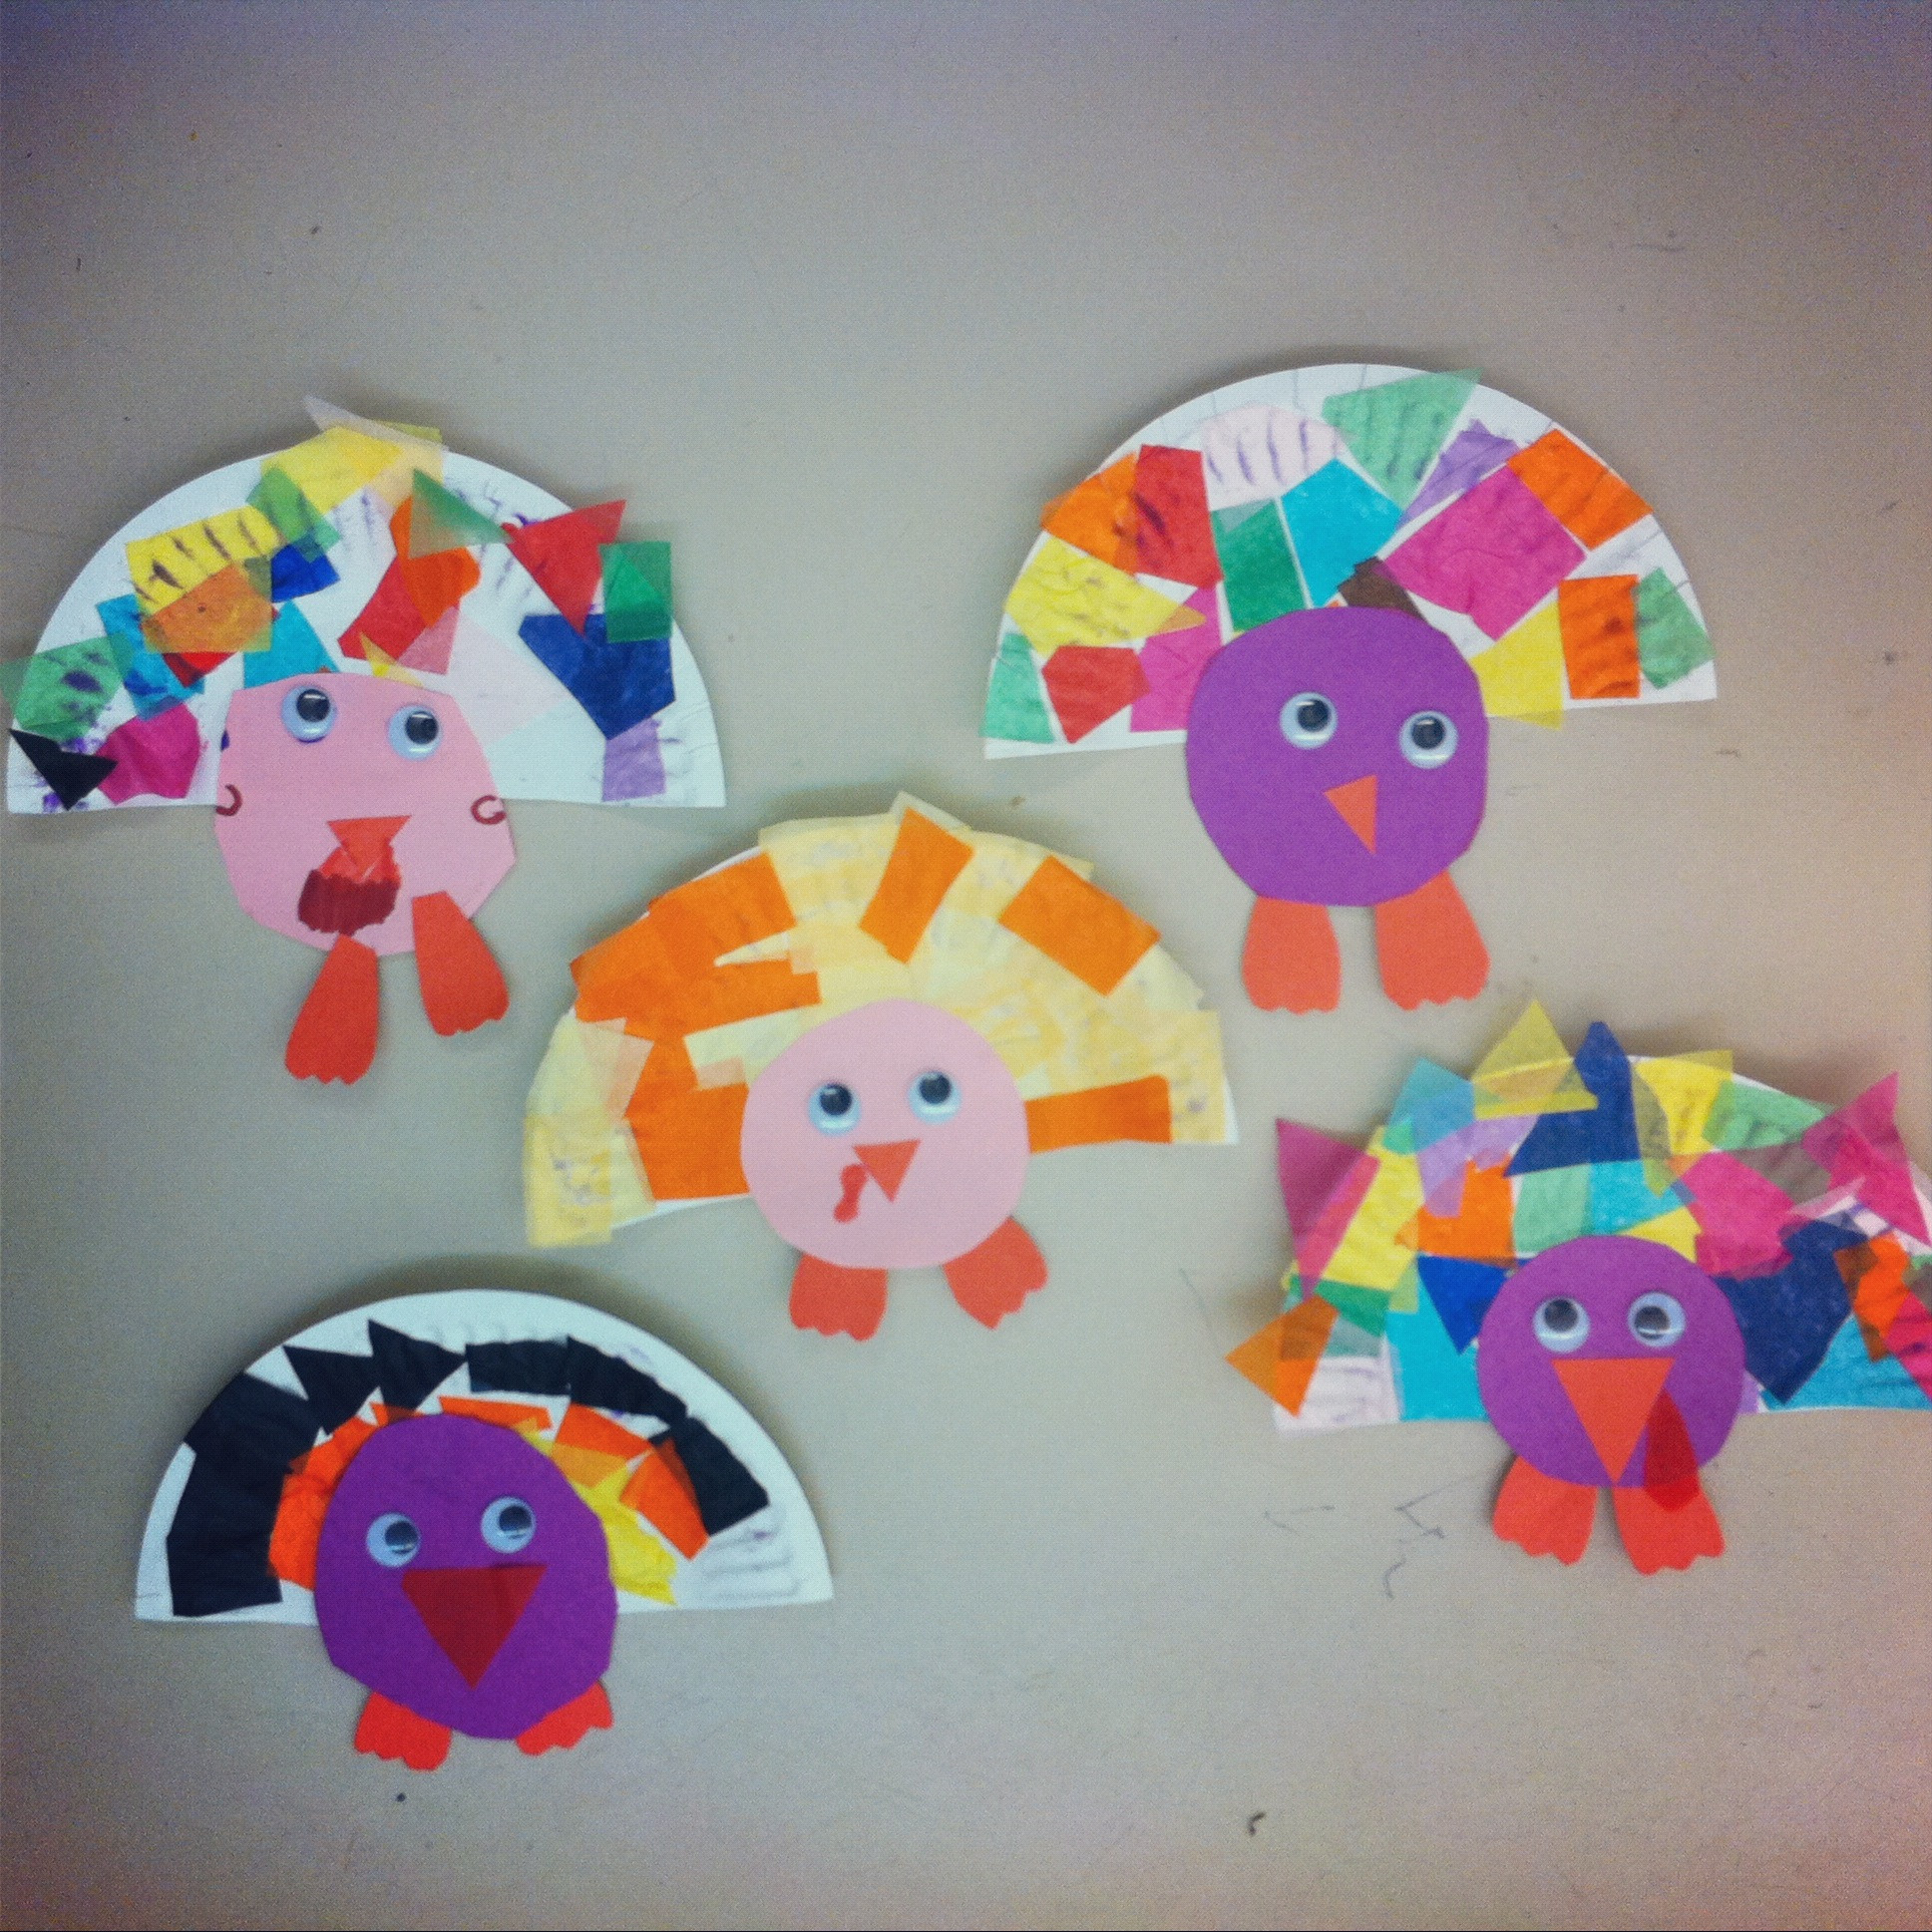 Easy Projects For Preschoolers  Easy Thanksgiving Projects